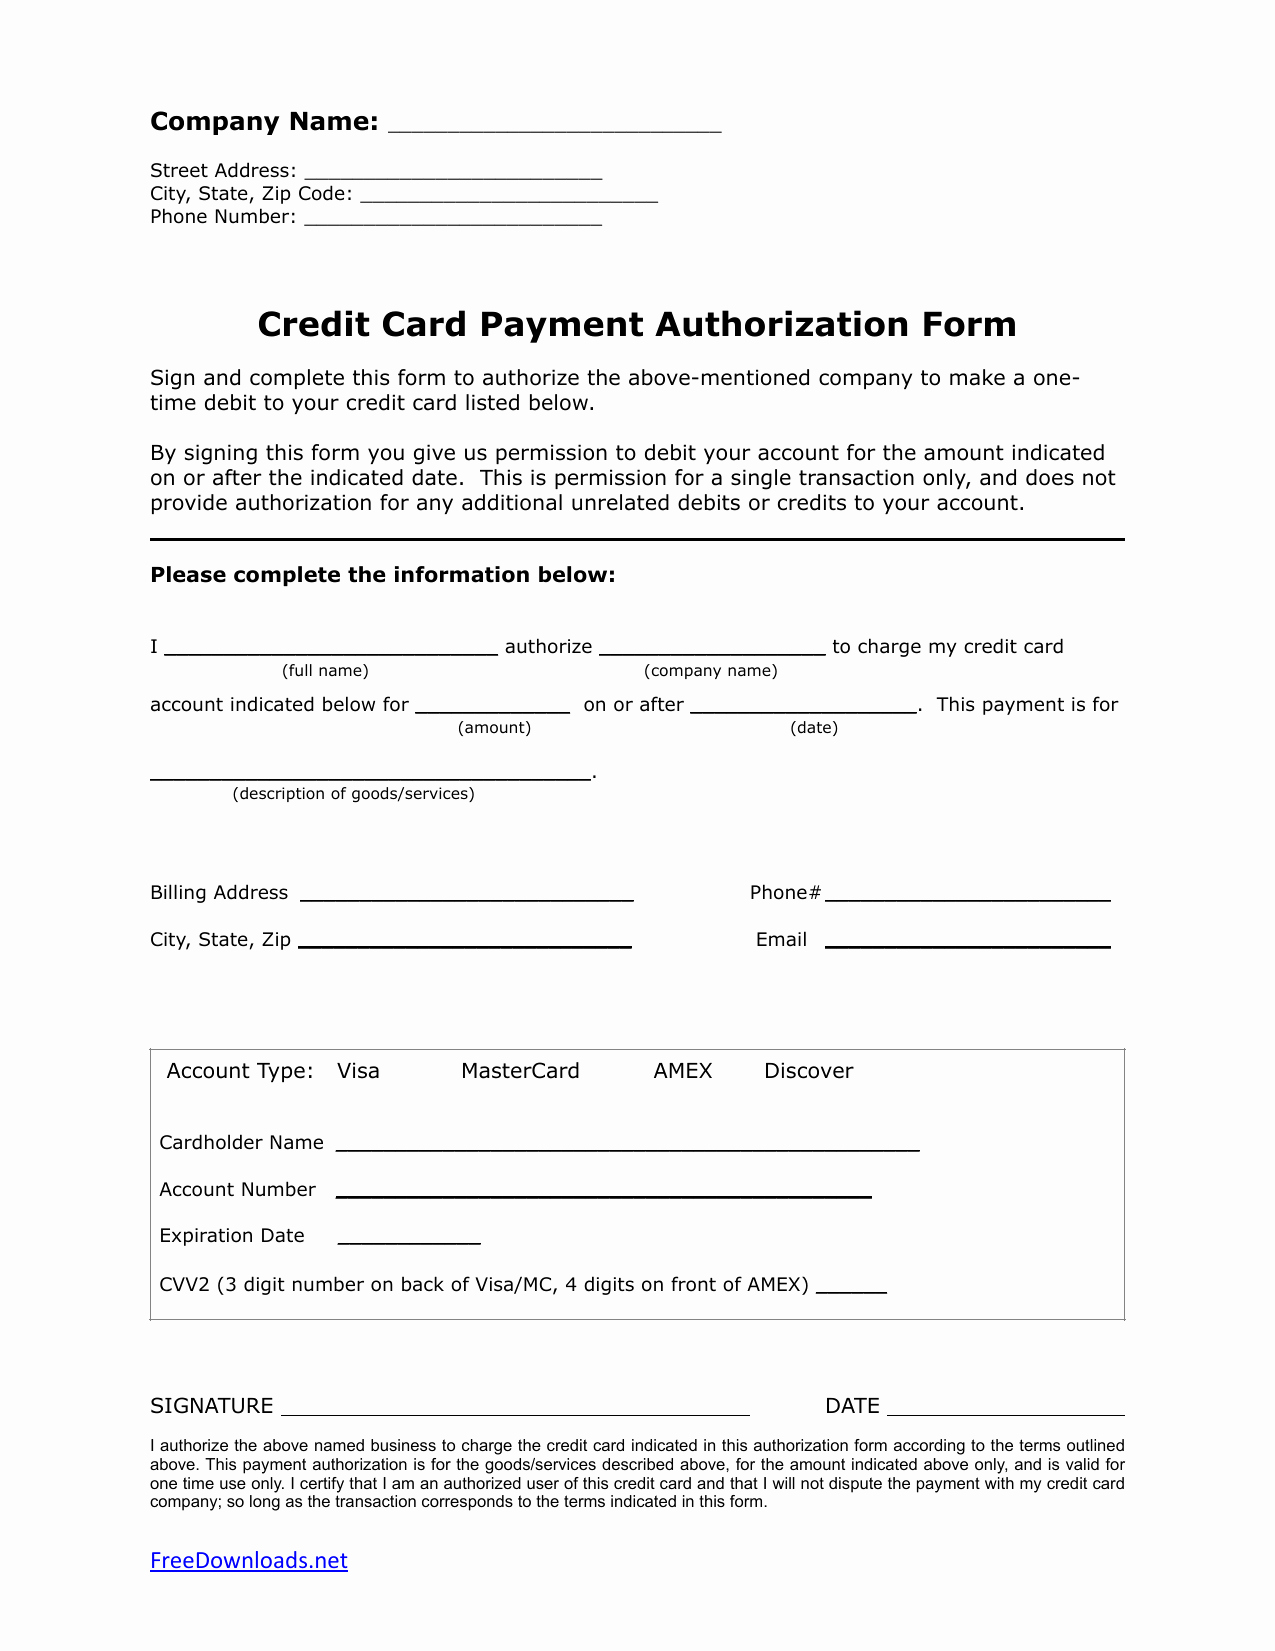 Credit Card form Template Elegant Download E 1 Time Credit Card Authorization Payment